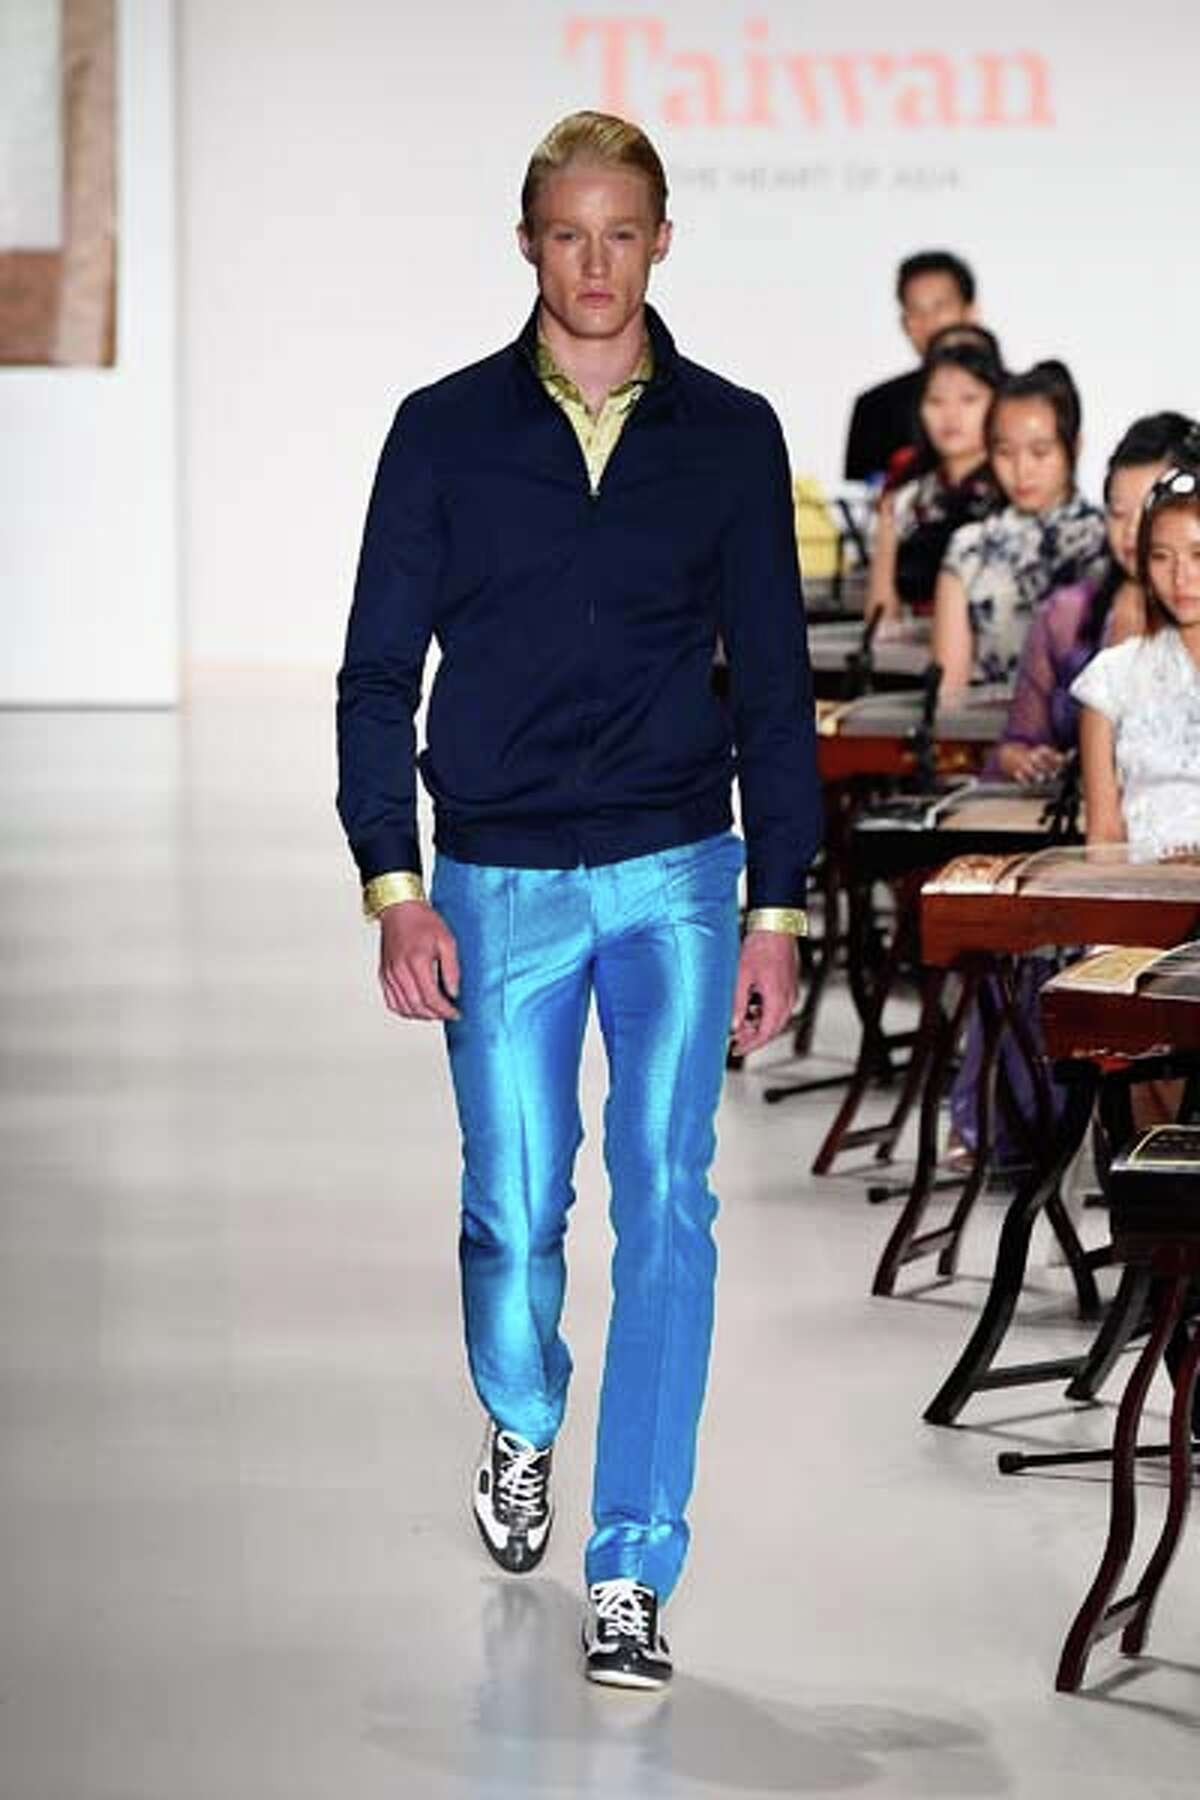 These shiny pants, on the other hand, are so amazing. Someone needs to wear these to the office right now.